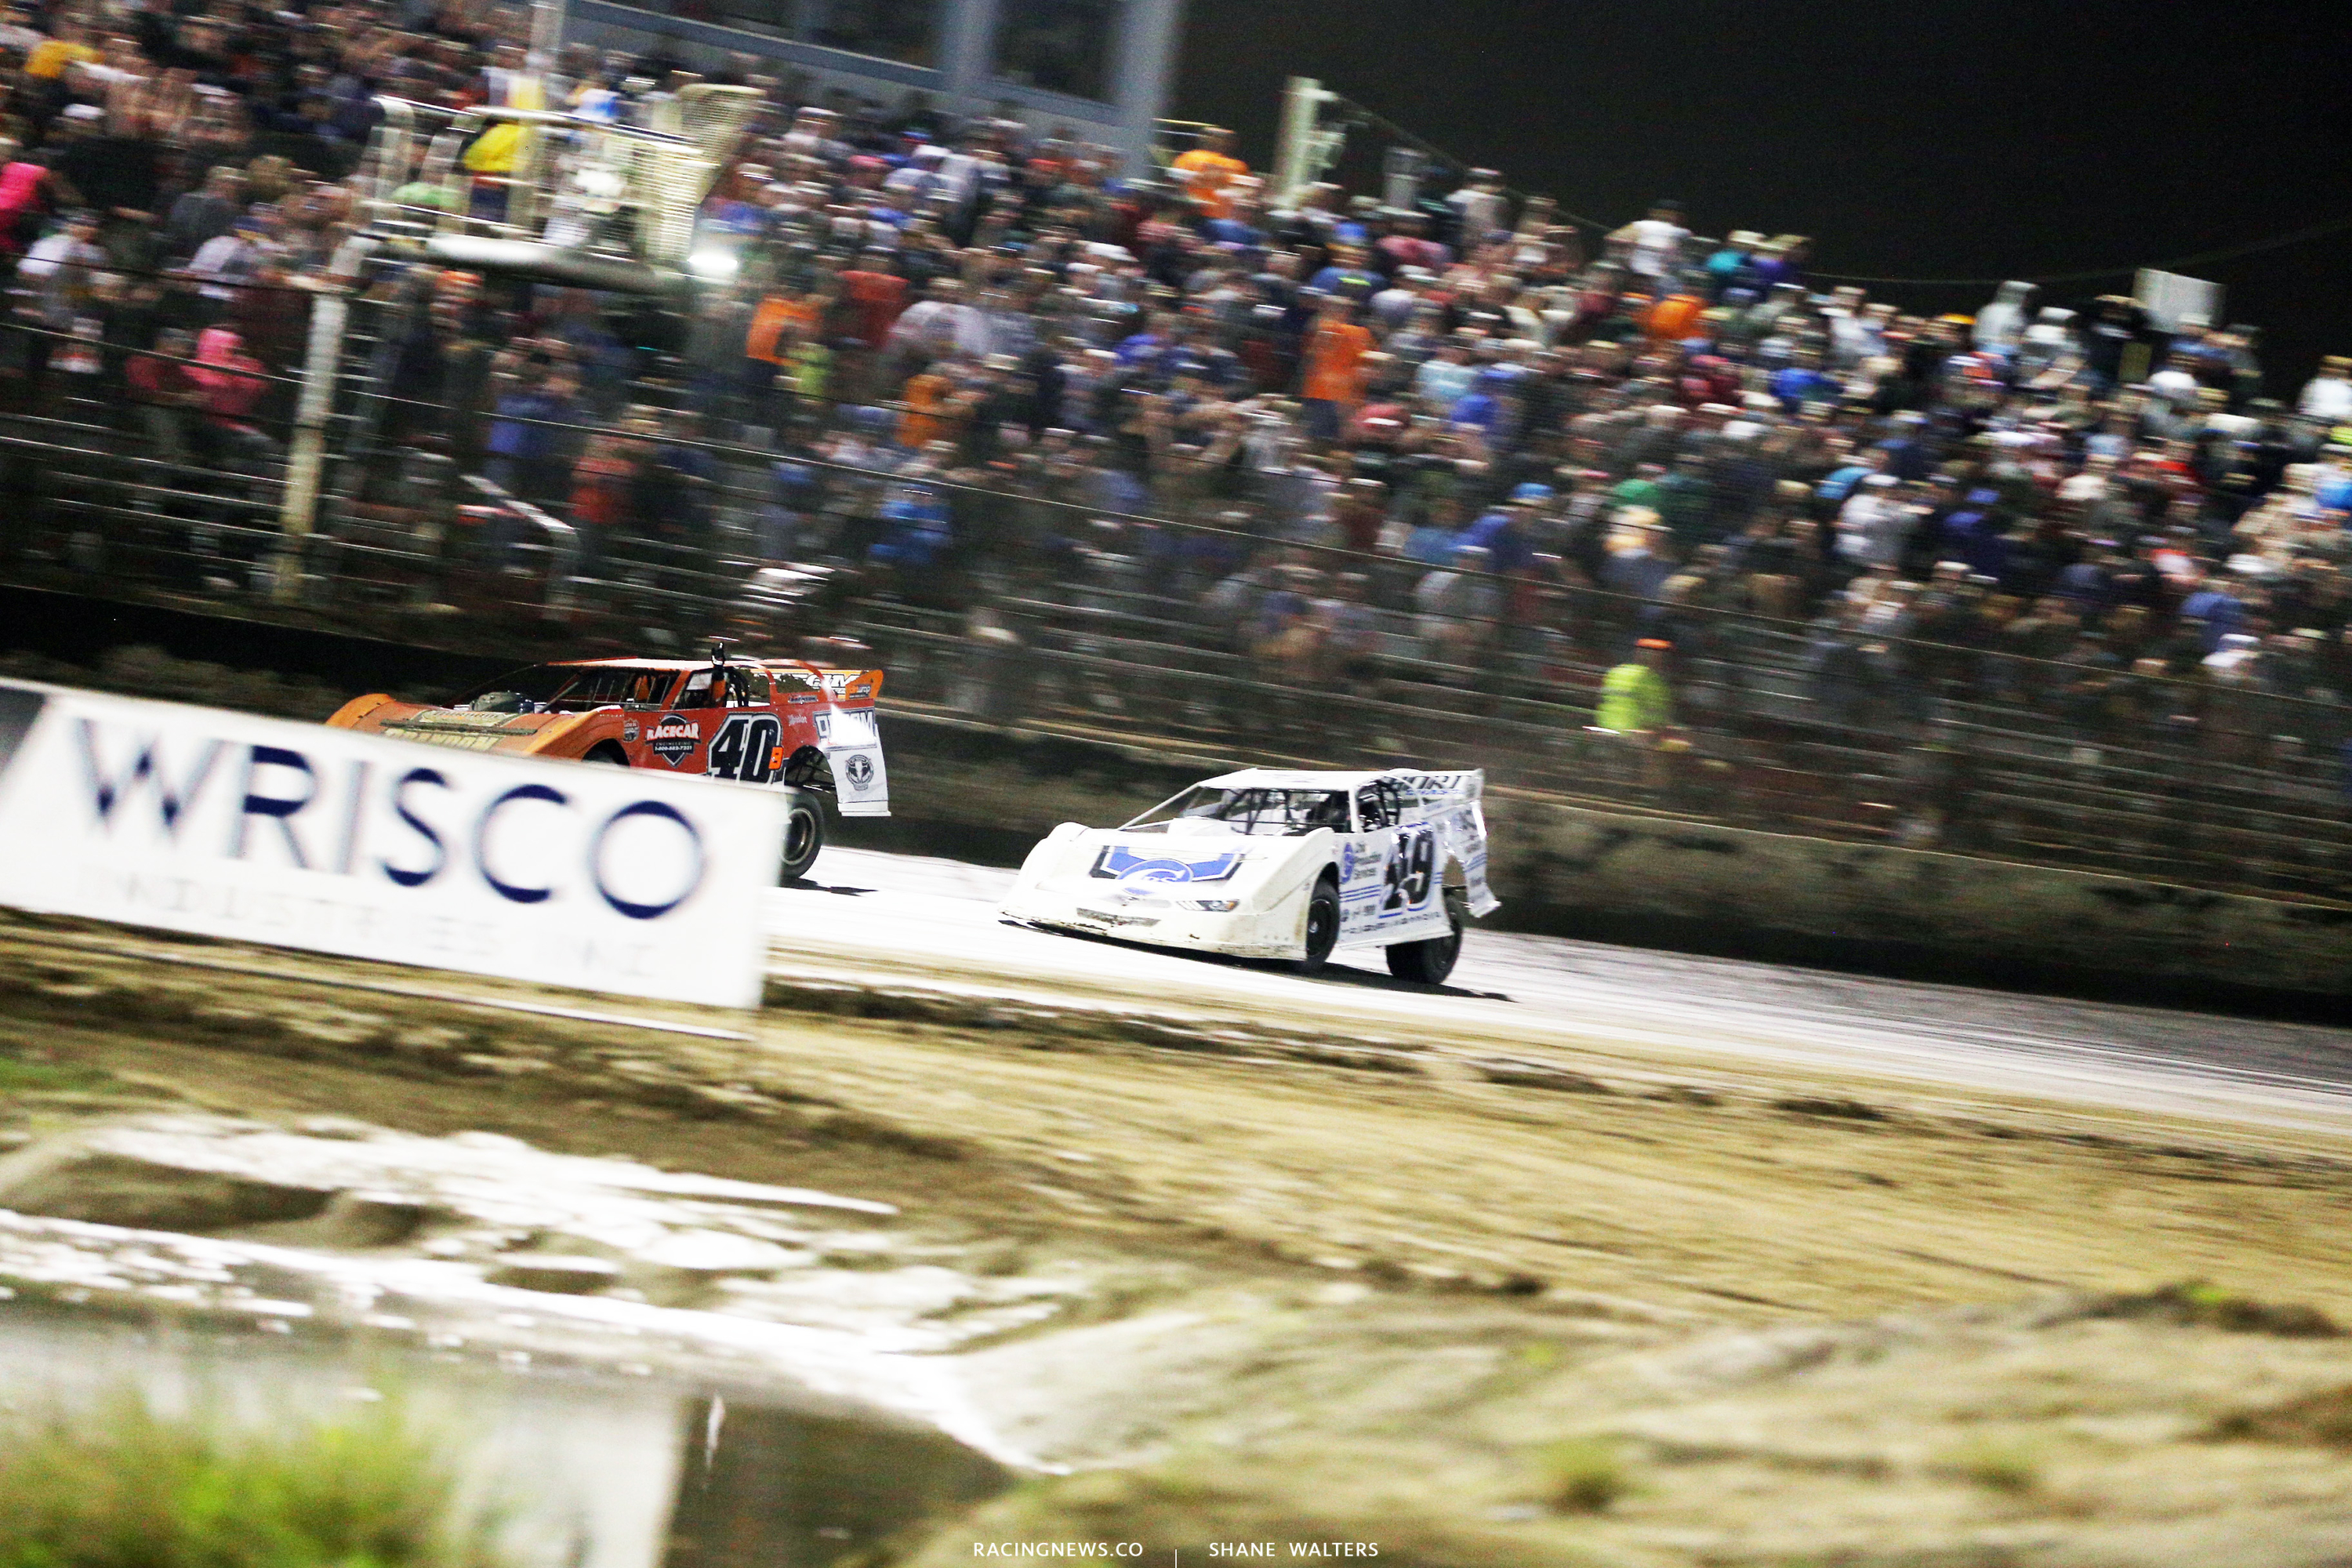 Kyle Bronson wins the Lucas Oil Late Model Dirt Series event at East Bay Raceway Park 0121